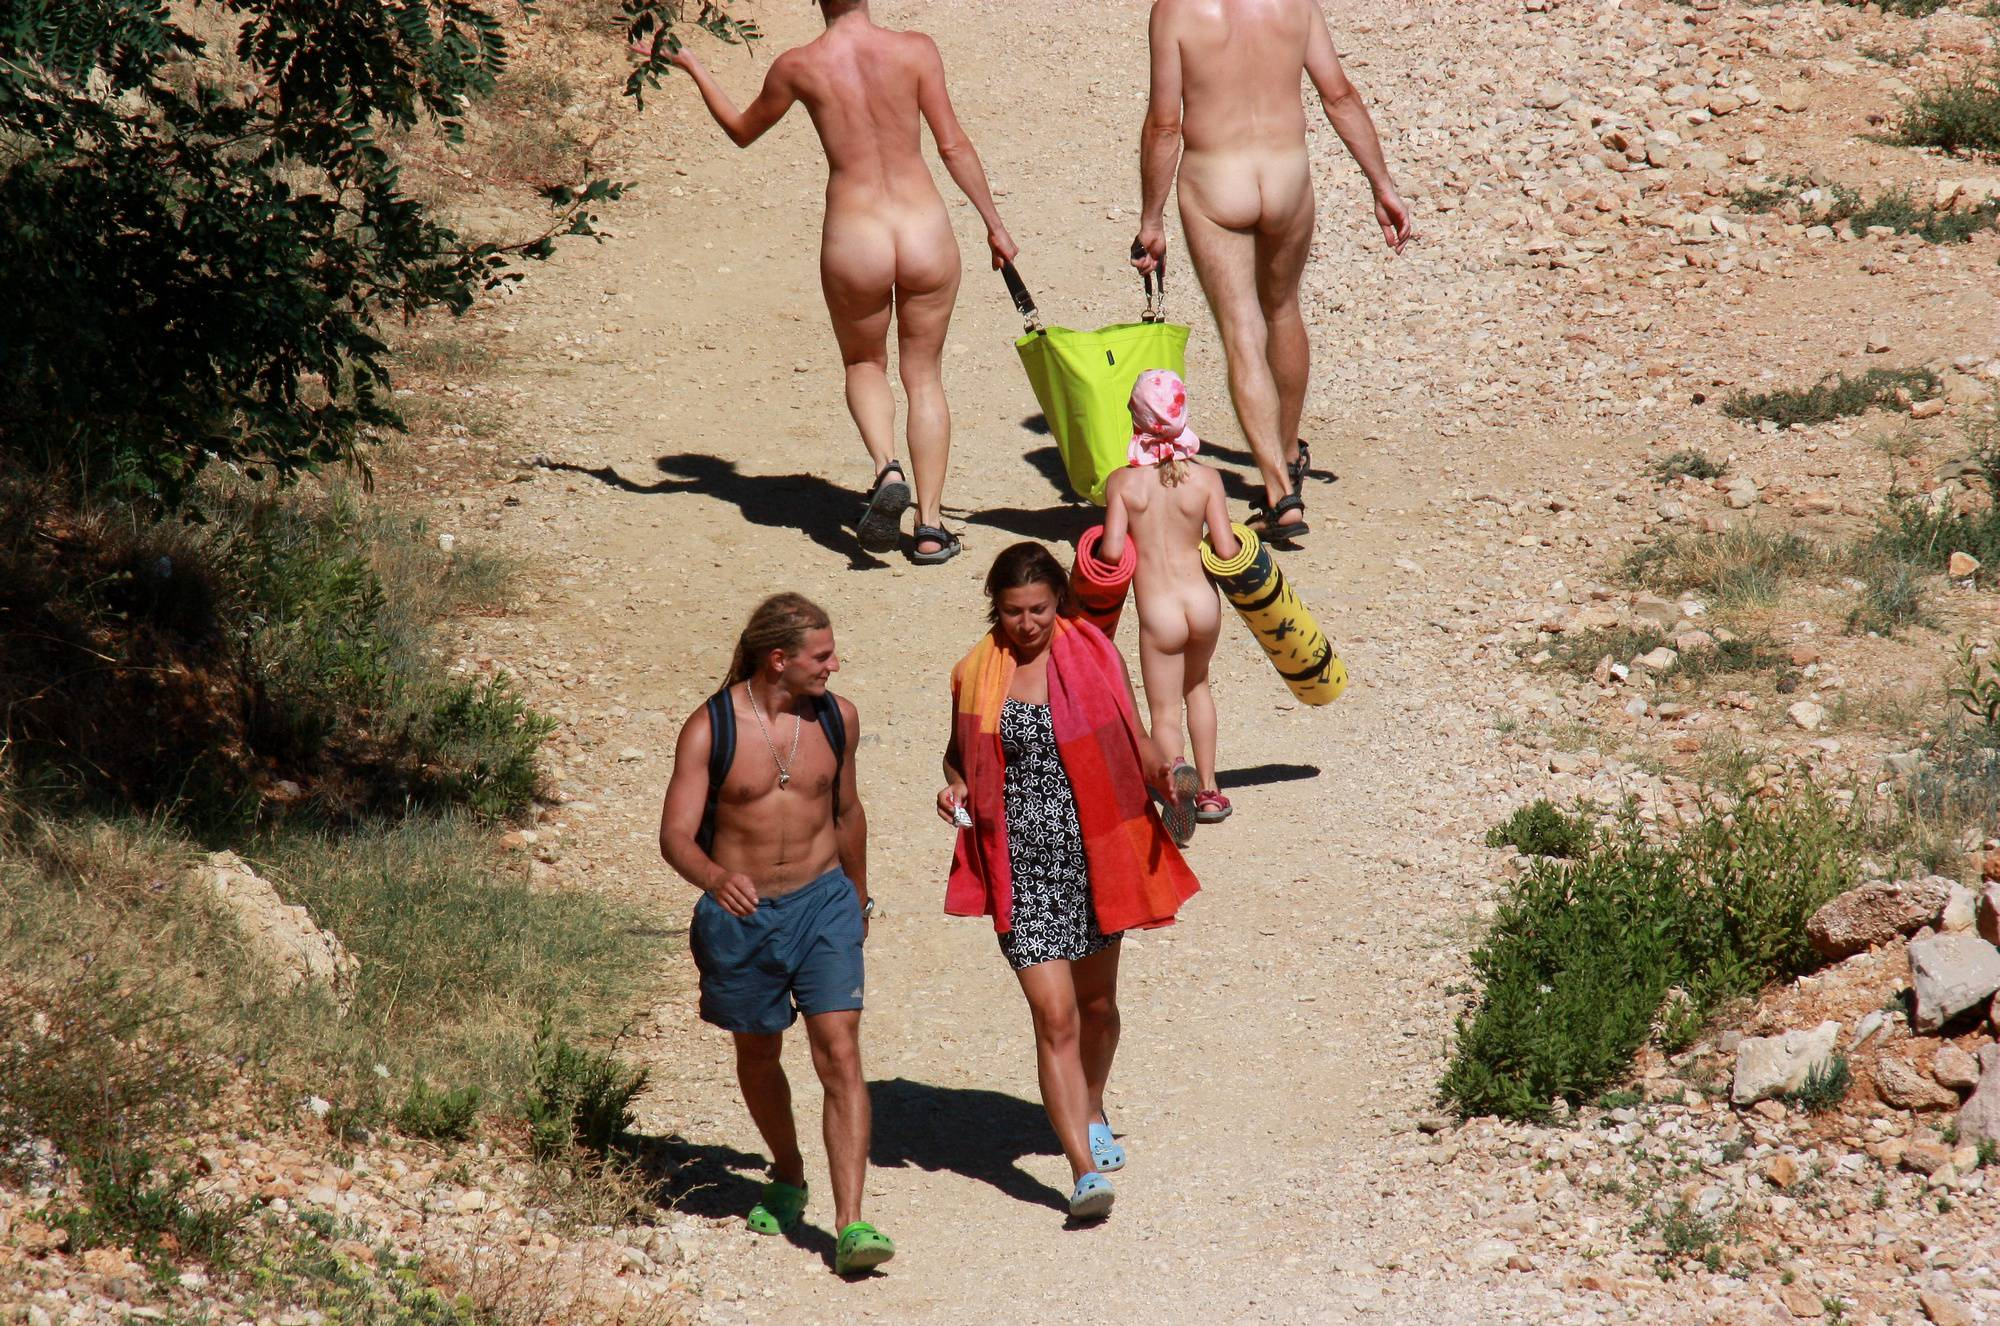 Nudist Family Deportation - 2